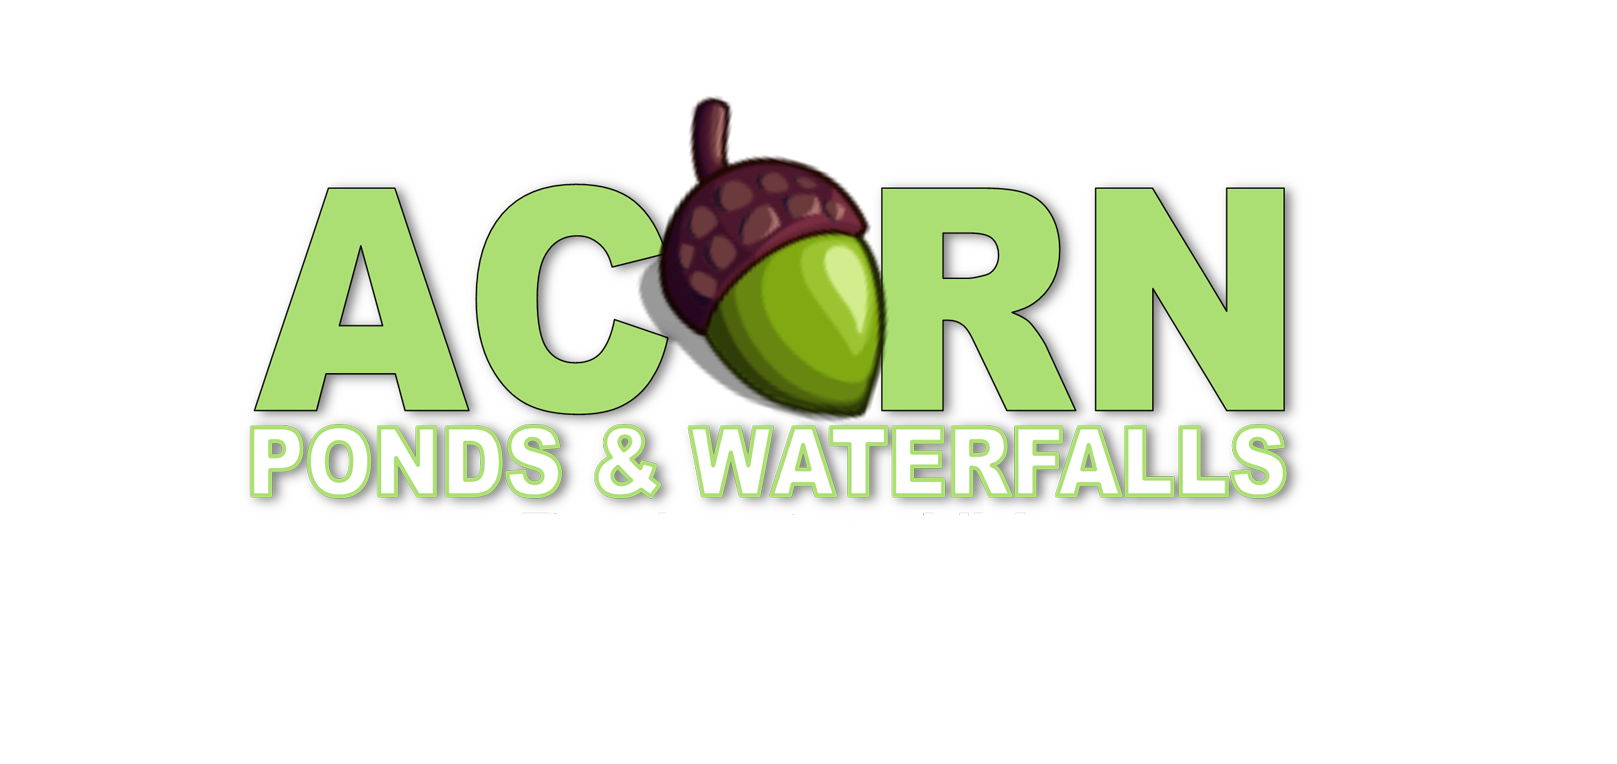 Water Feature-Pond Contractor Rochester NY - Acorn Ponds & Waterfalls